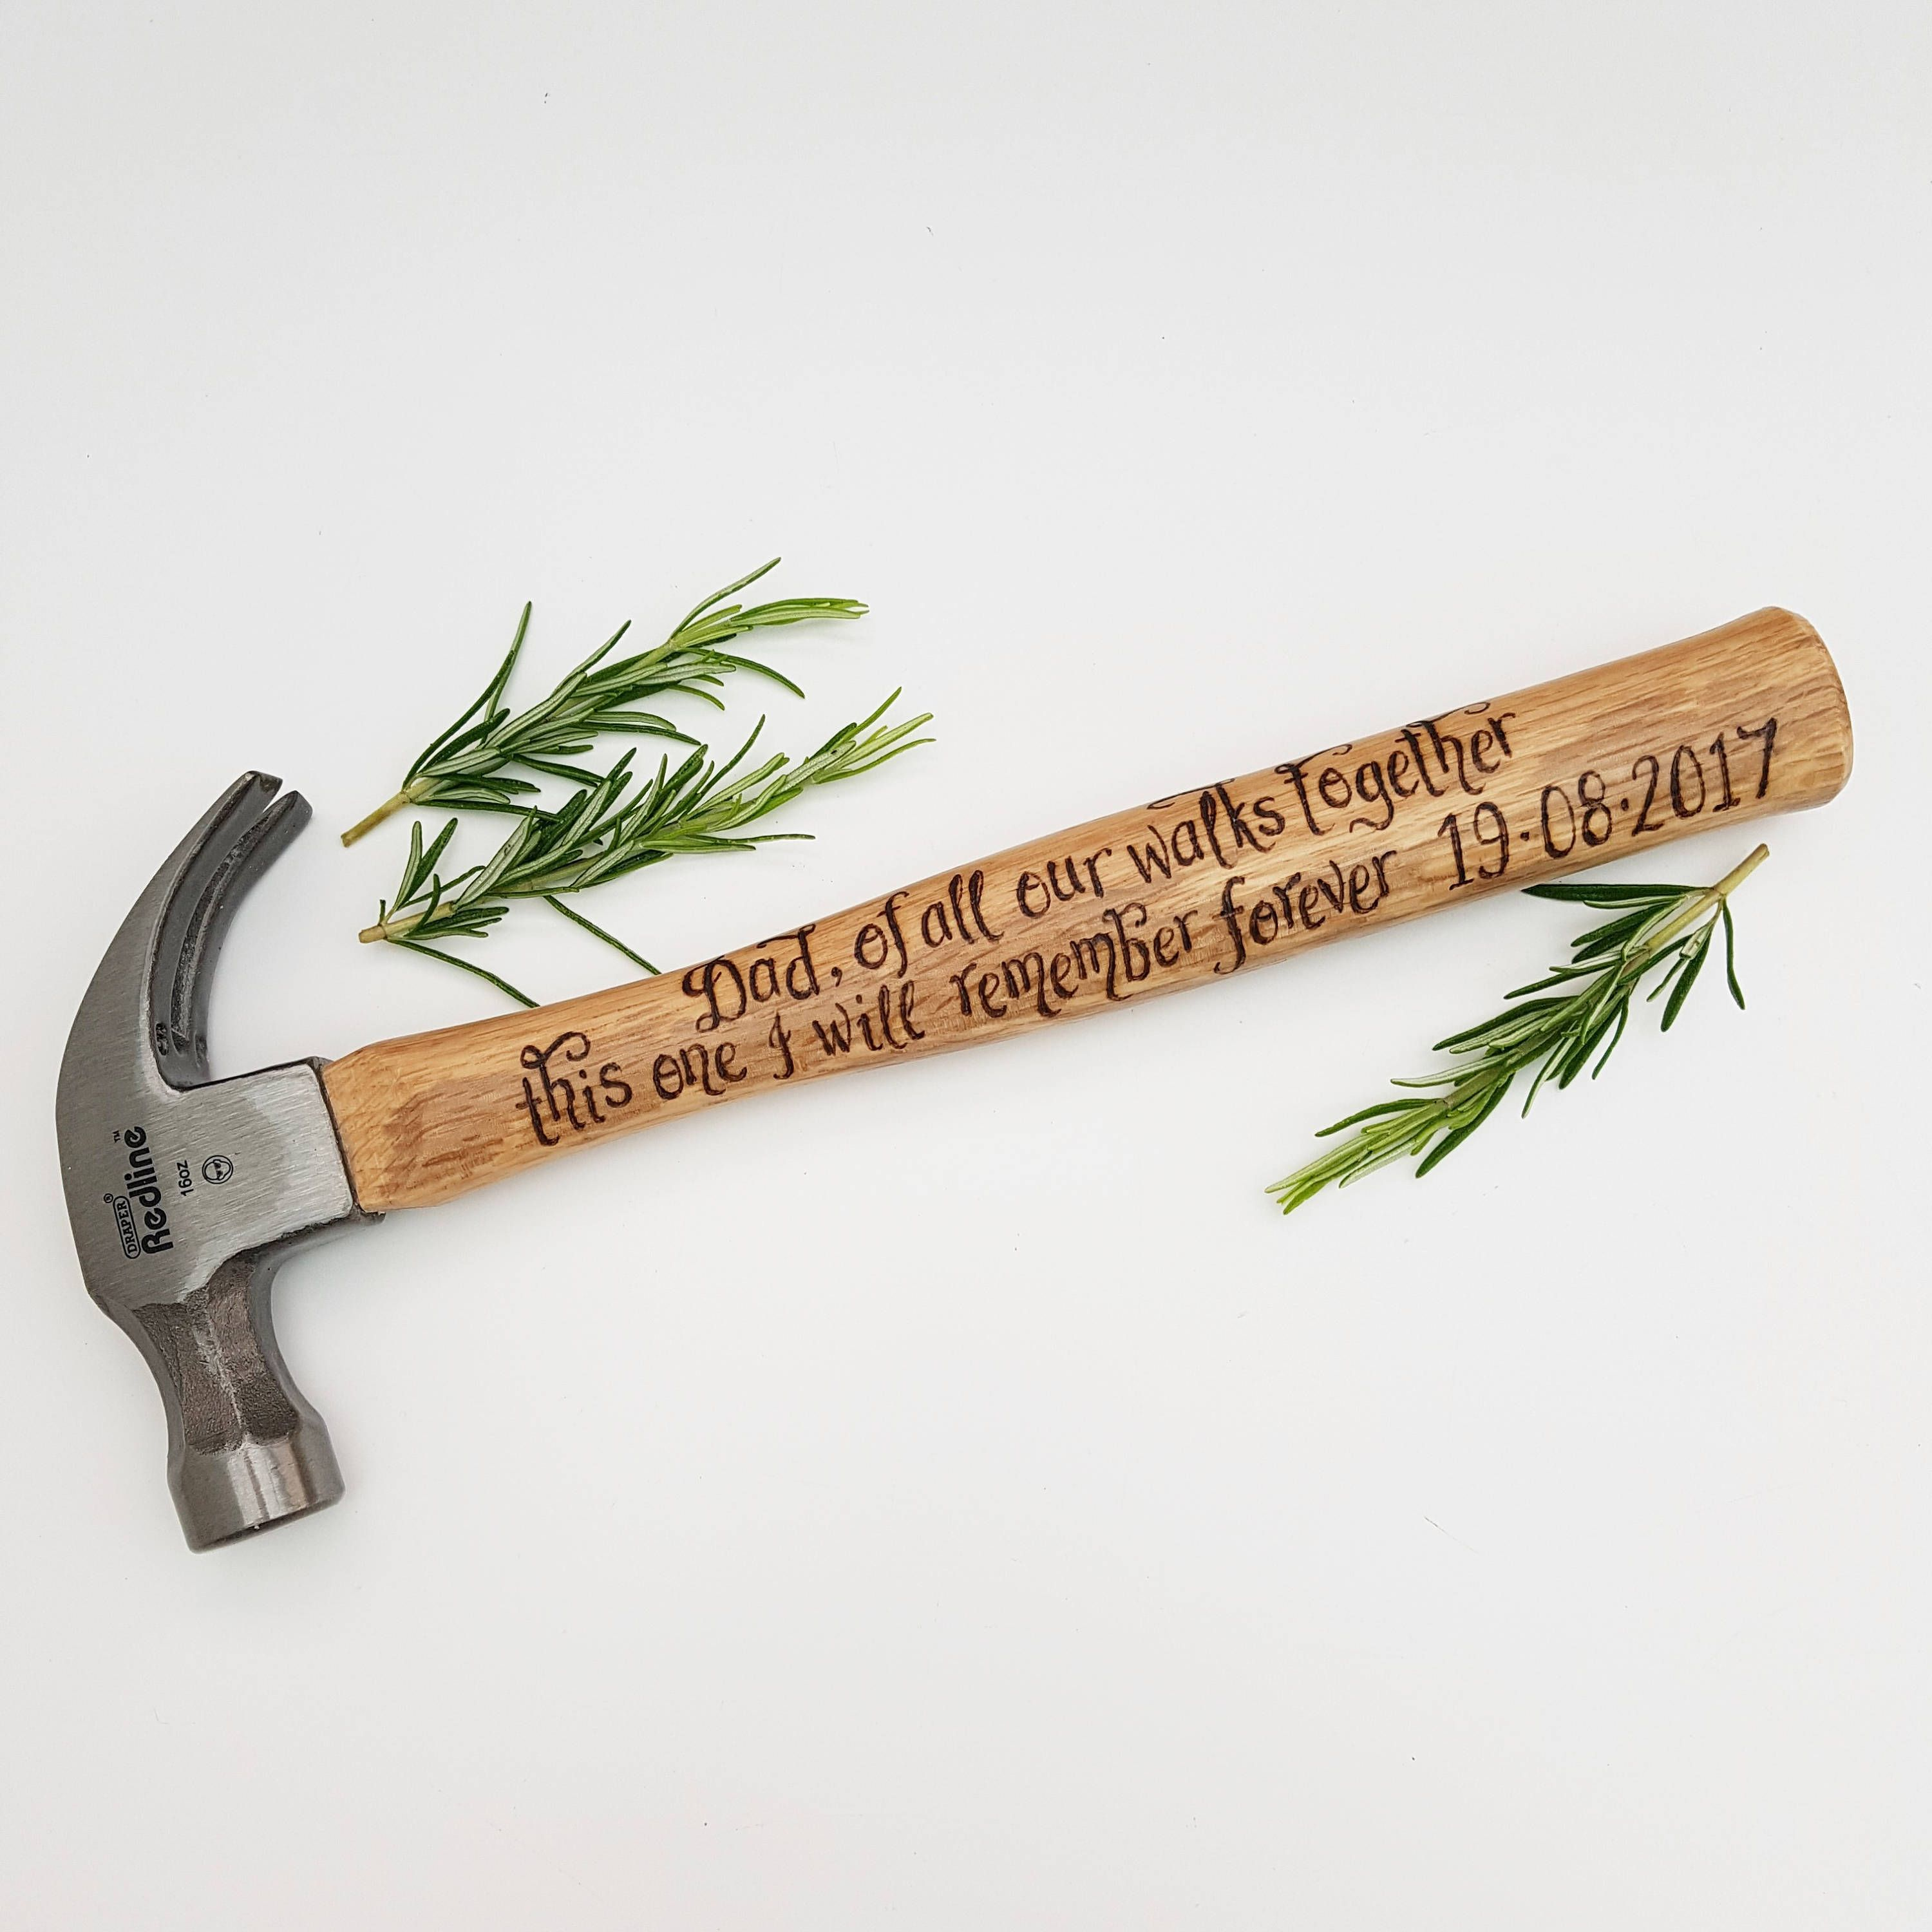 Walk Down The Aisle Gift Personalised Hammer Custom Gift Idea Father of the Bride Gift from Daughter Wedding Day Thank You Gift